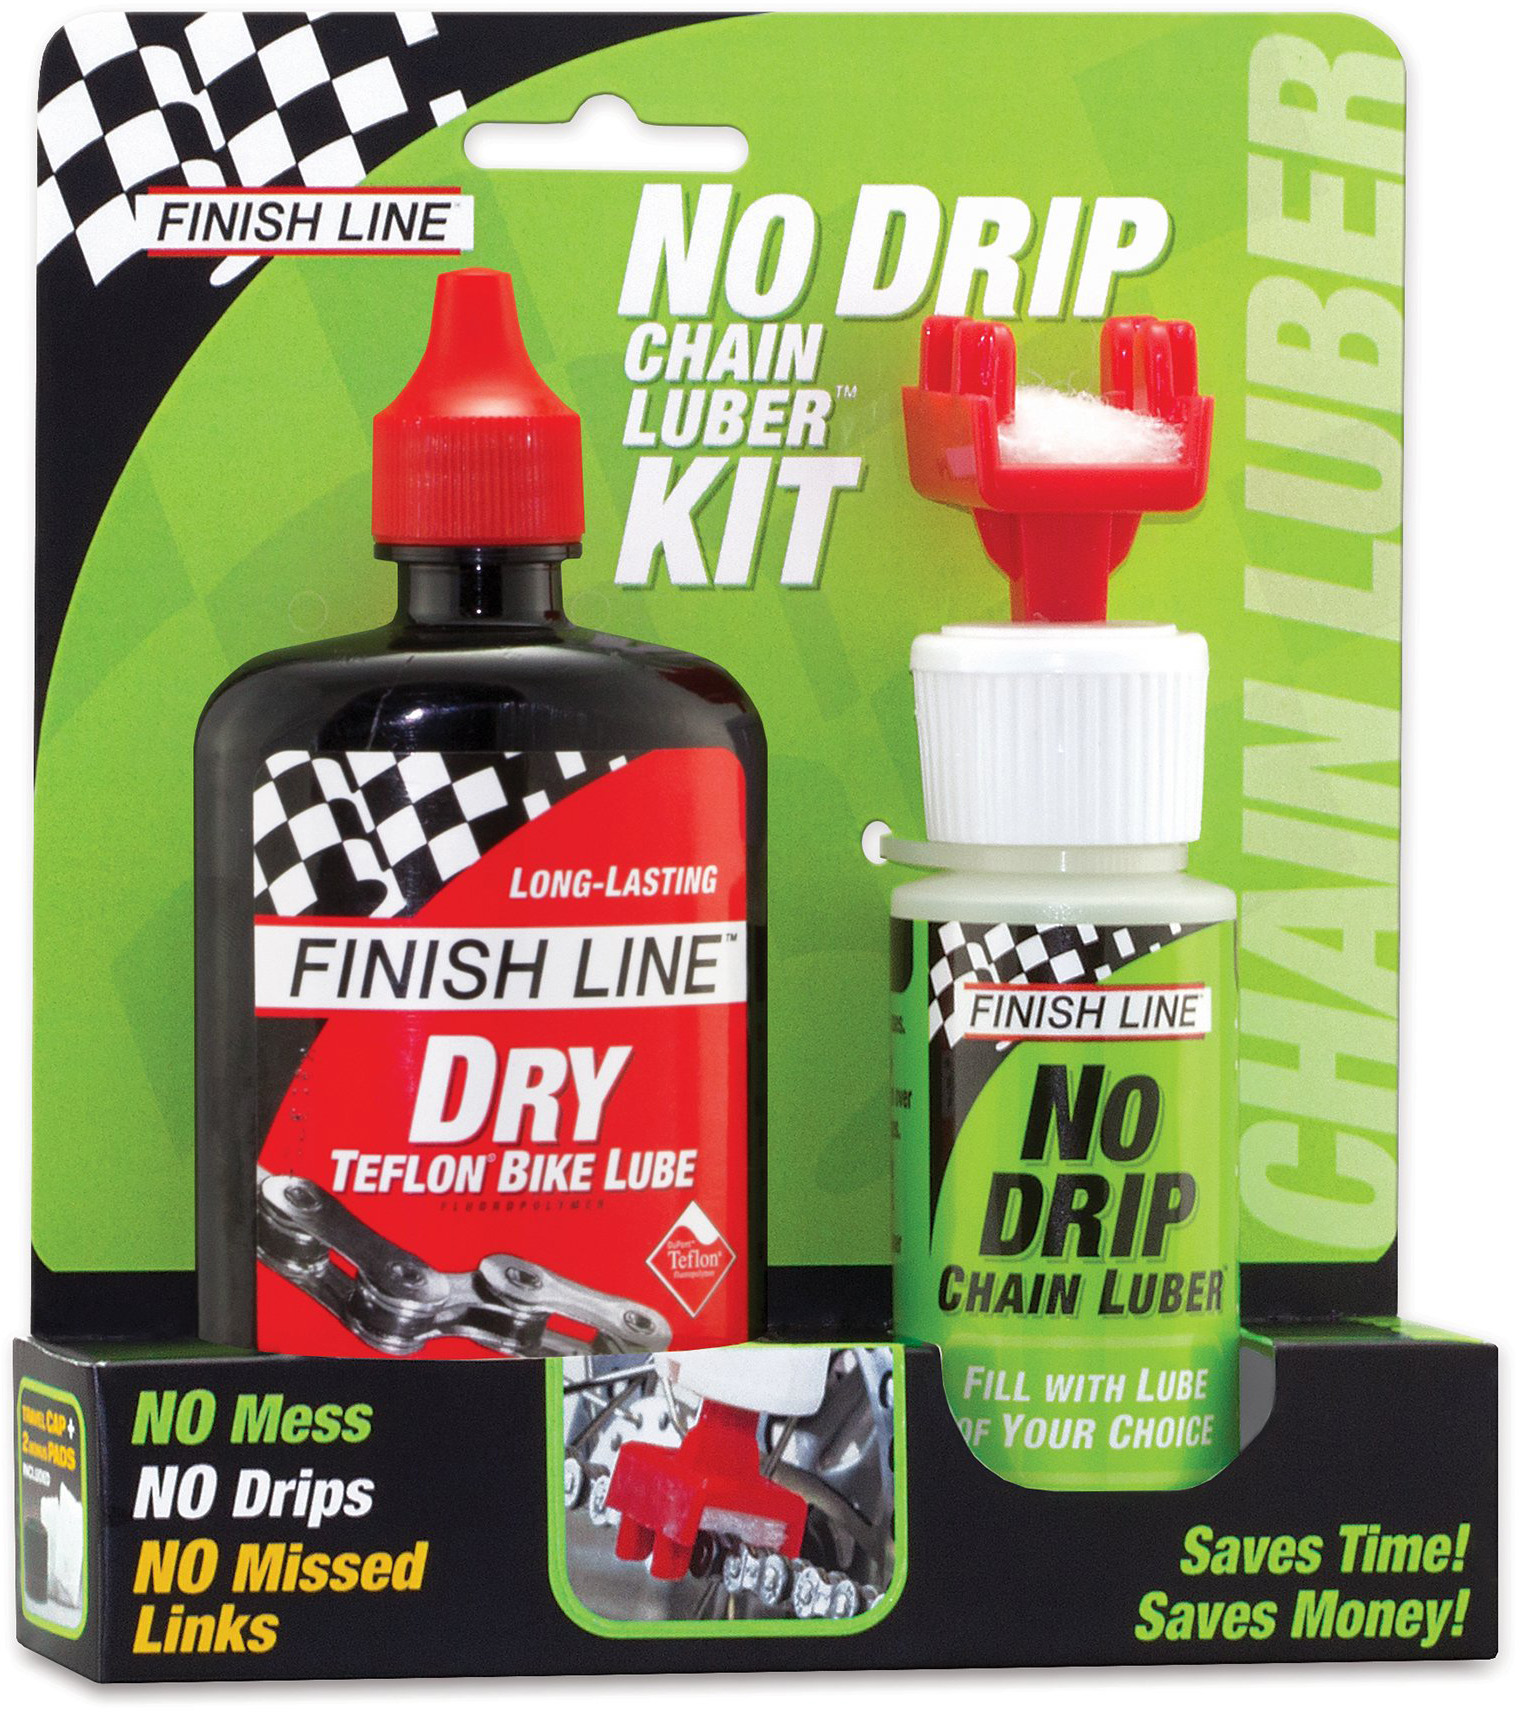 Finish Line No Drip and Dry Lube Combo | Body maintenance